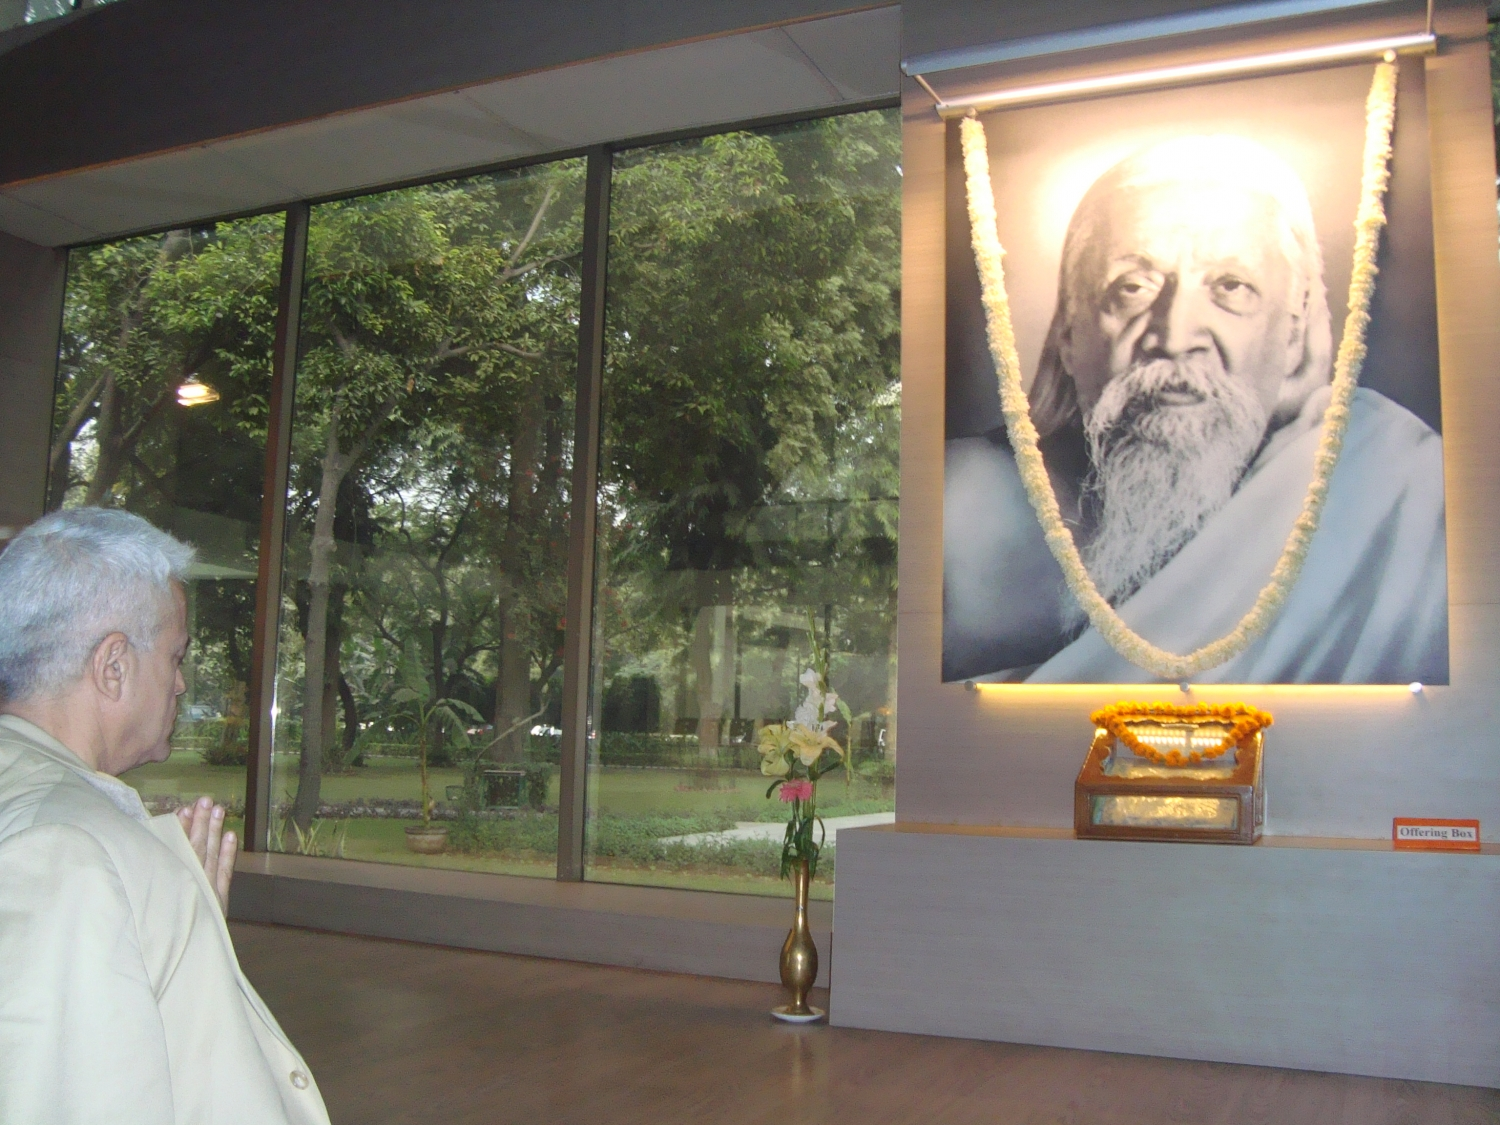 Meeting of H.H. Jagat Guru Amrta Súryánanda Mahá Rája with Dr. Ramesh Bijlani - Shrí Aurobindo Áshrama, New Dillí, India - 2010, January